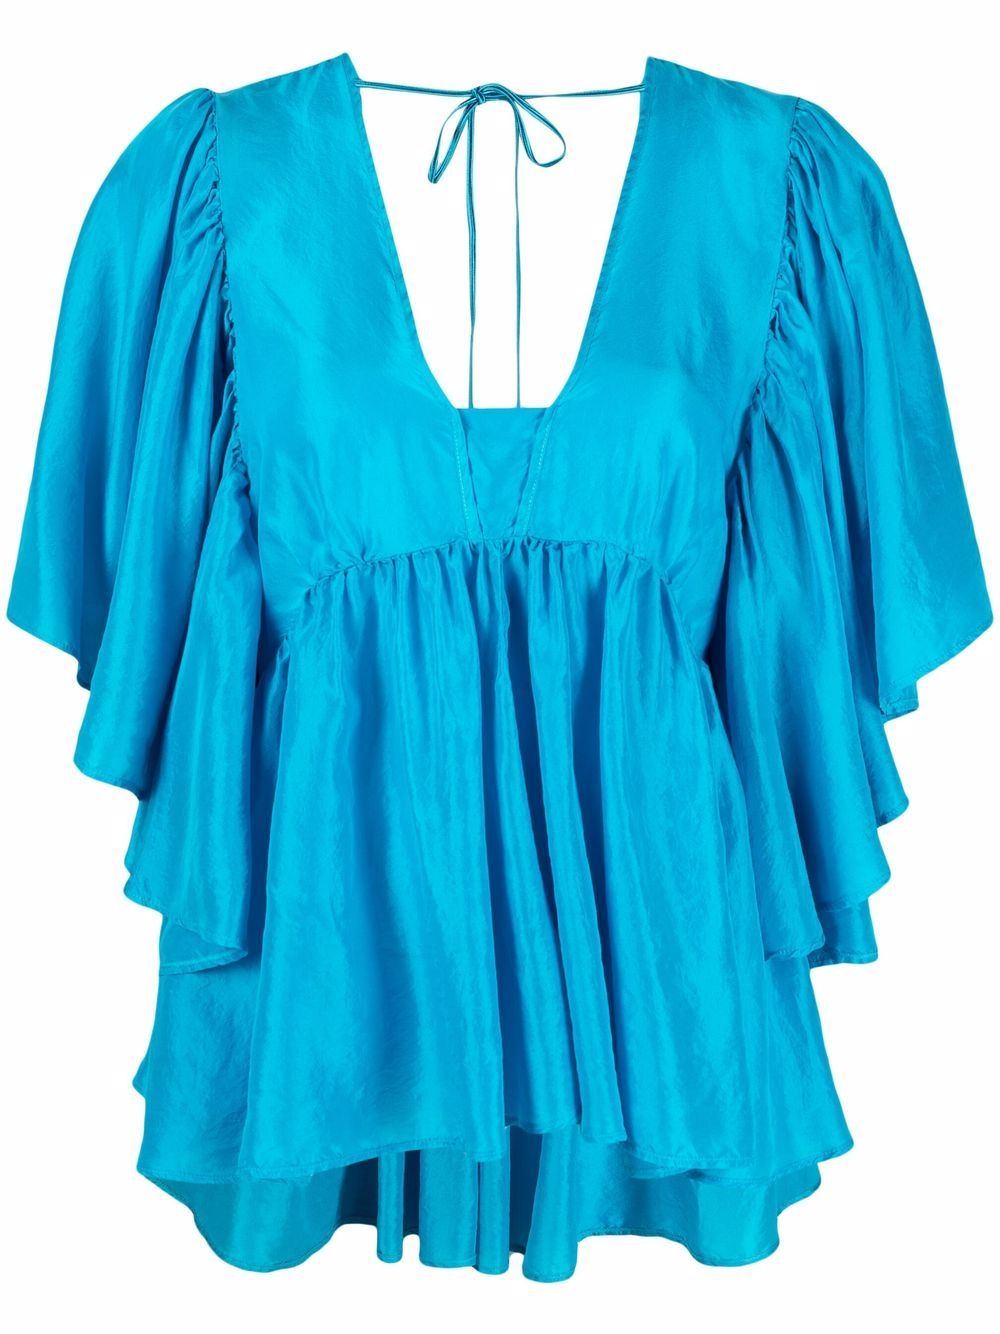 Mare blue silk short-sleeved blouse featuring ruffled detailing FORTE_FORTE |  | 8237MARE